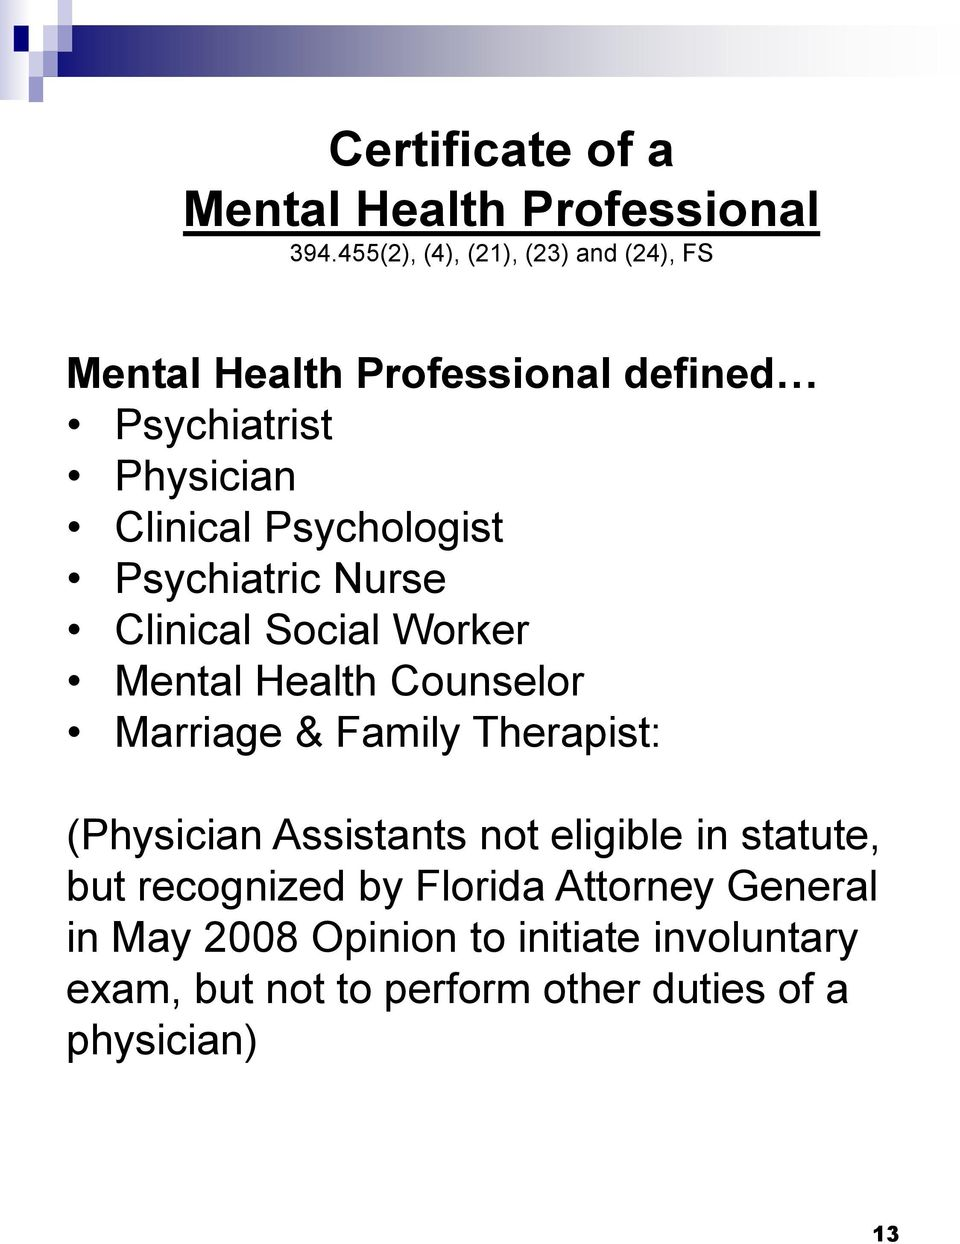 Psychologist Psychiatric Nurse Clinical Social Worker Mental Health Counselor Marriage & Family Therapist: